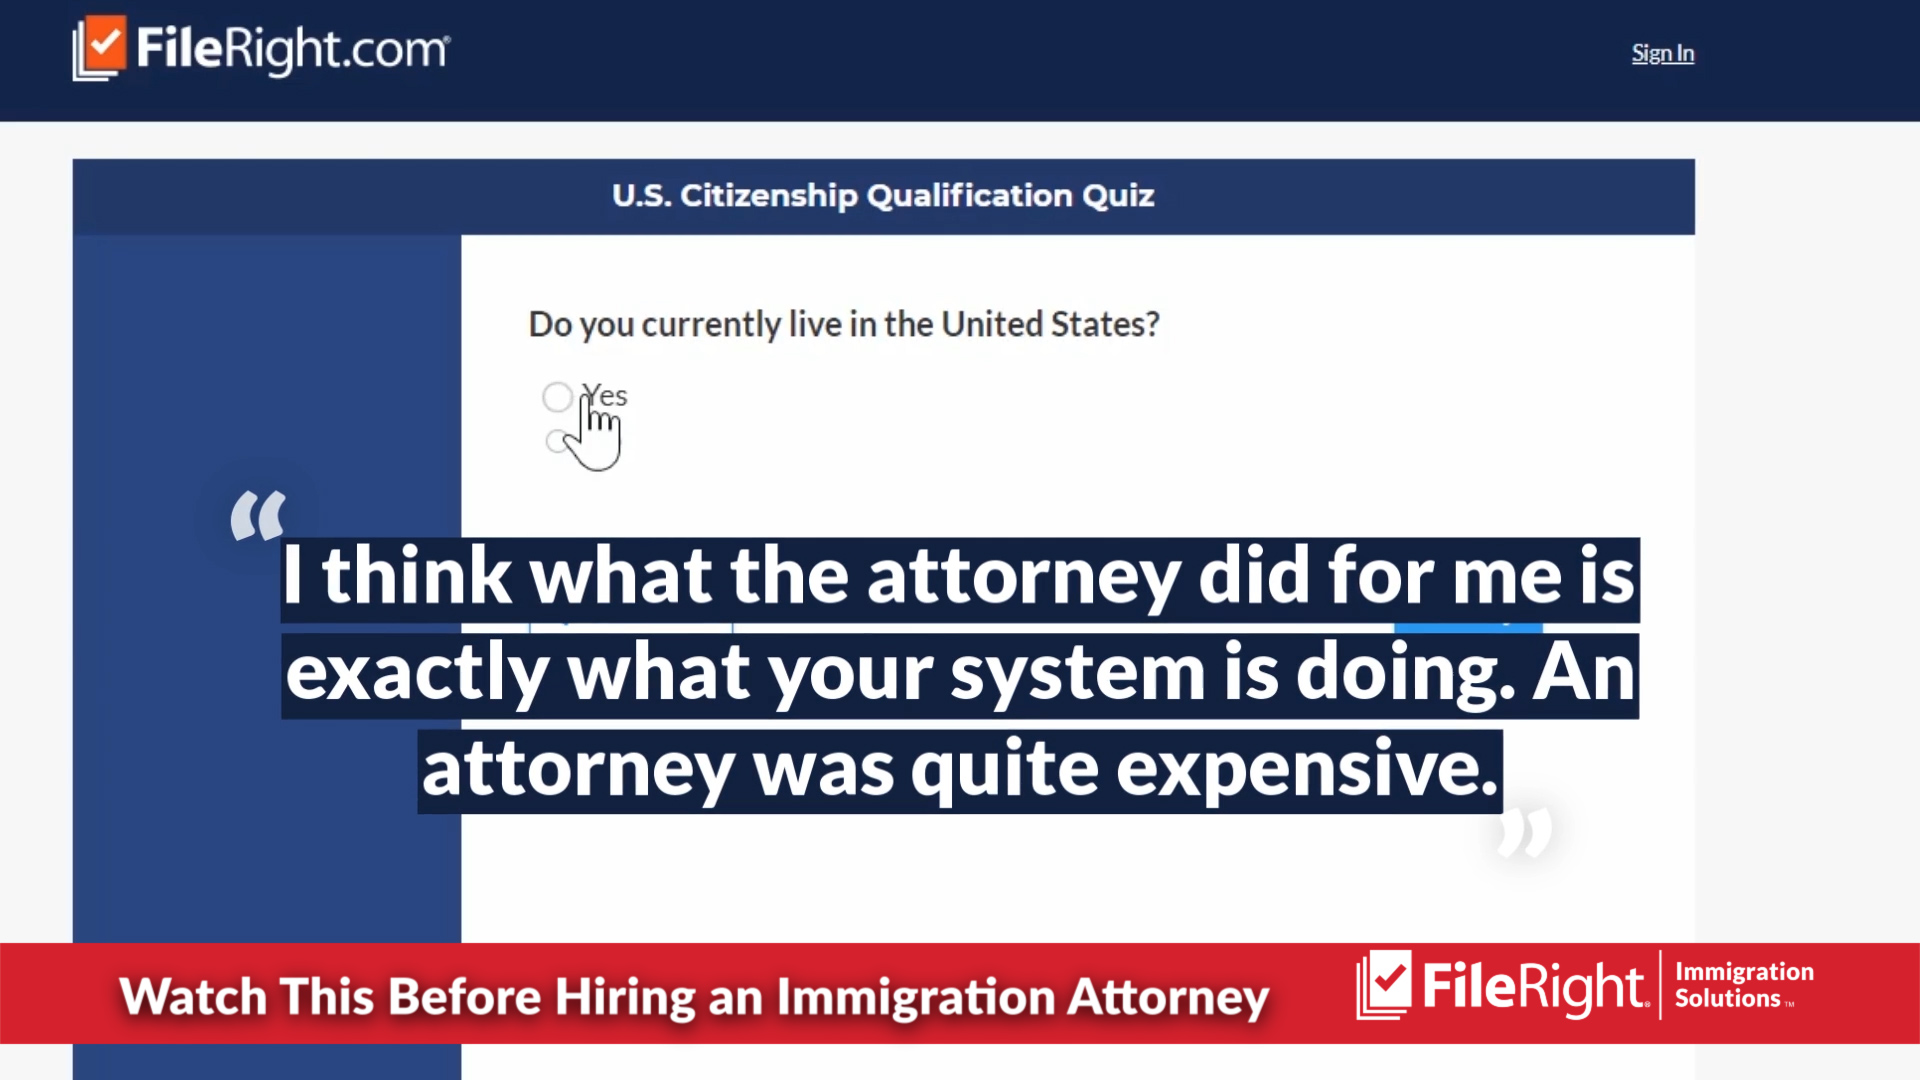 You may not need an immigration attorney to file your immigration application.